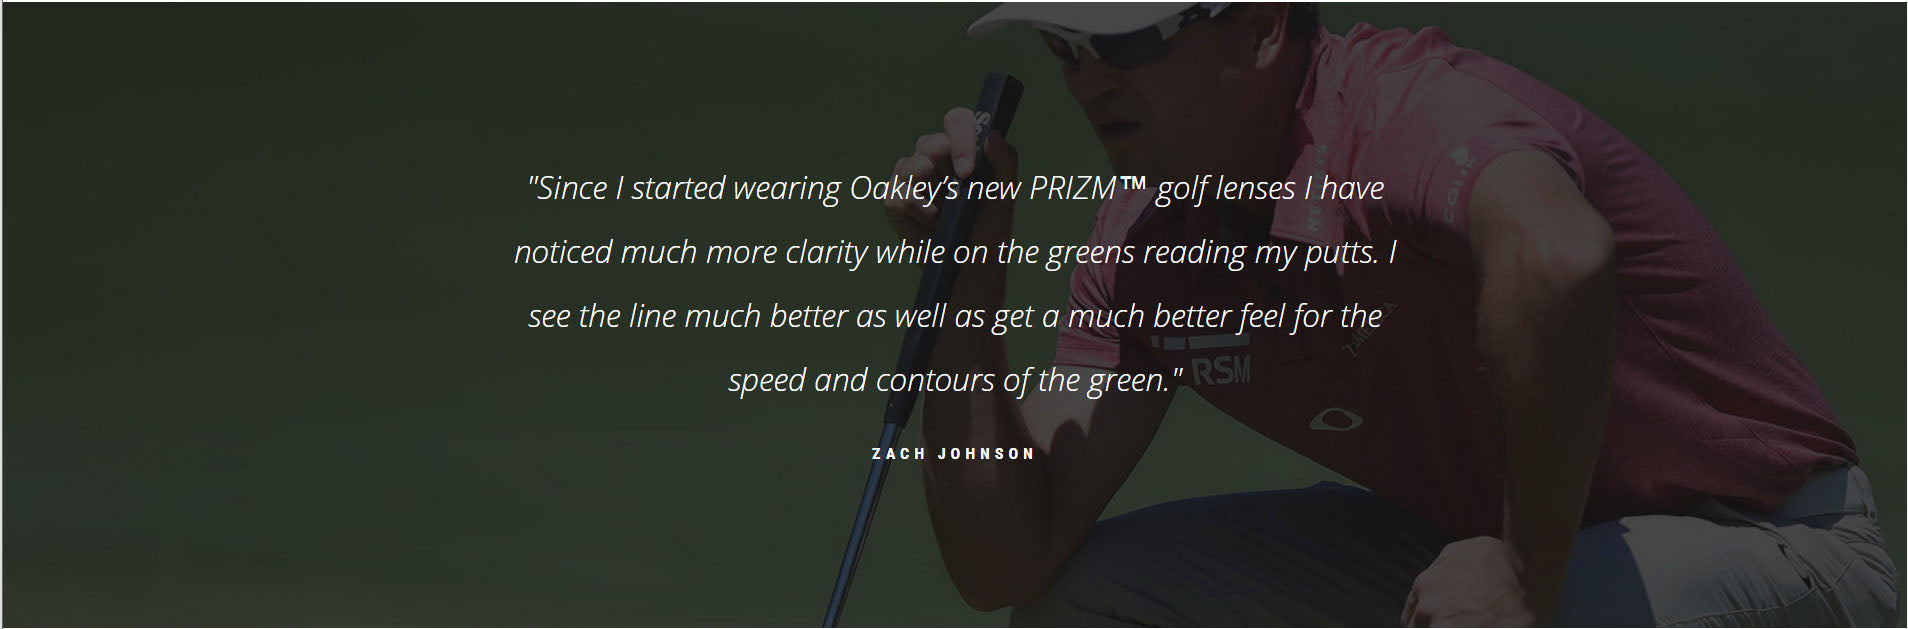 """Since I started wearing Oakley's new PRIZM™ golf lenses I have noticed much more clarity while on the greens reading my putts. I see the line much better as well as get a much better feel for the speed and contours of the green."" - ZACH JOHNSON"